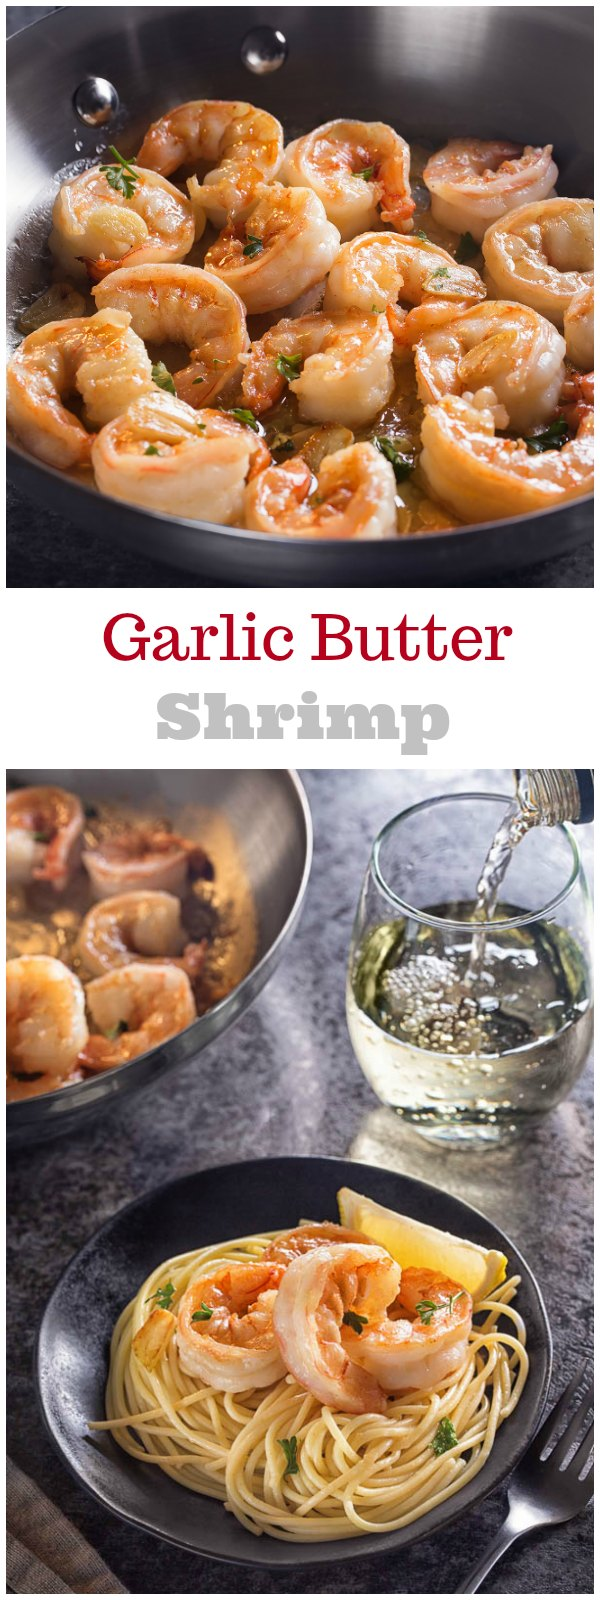 Garlic Butter Shrimp- quick and easy weeknight meal!